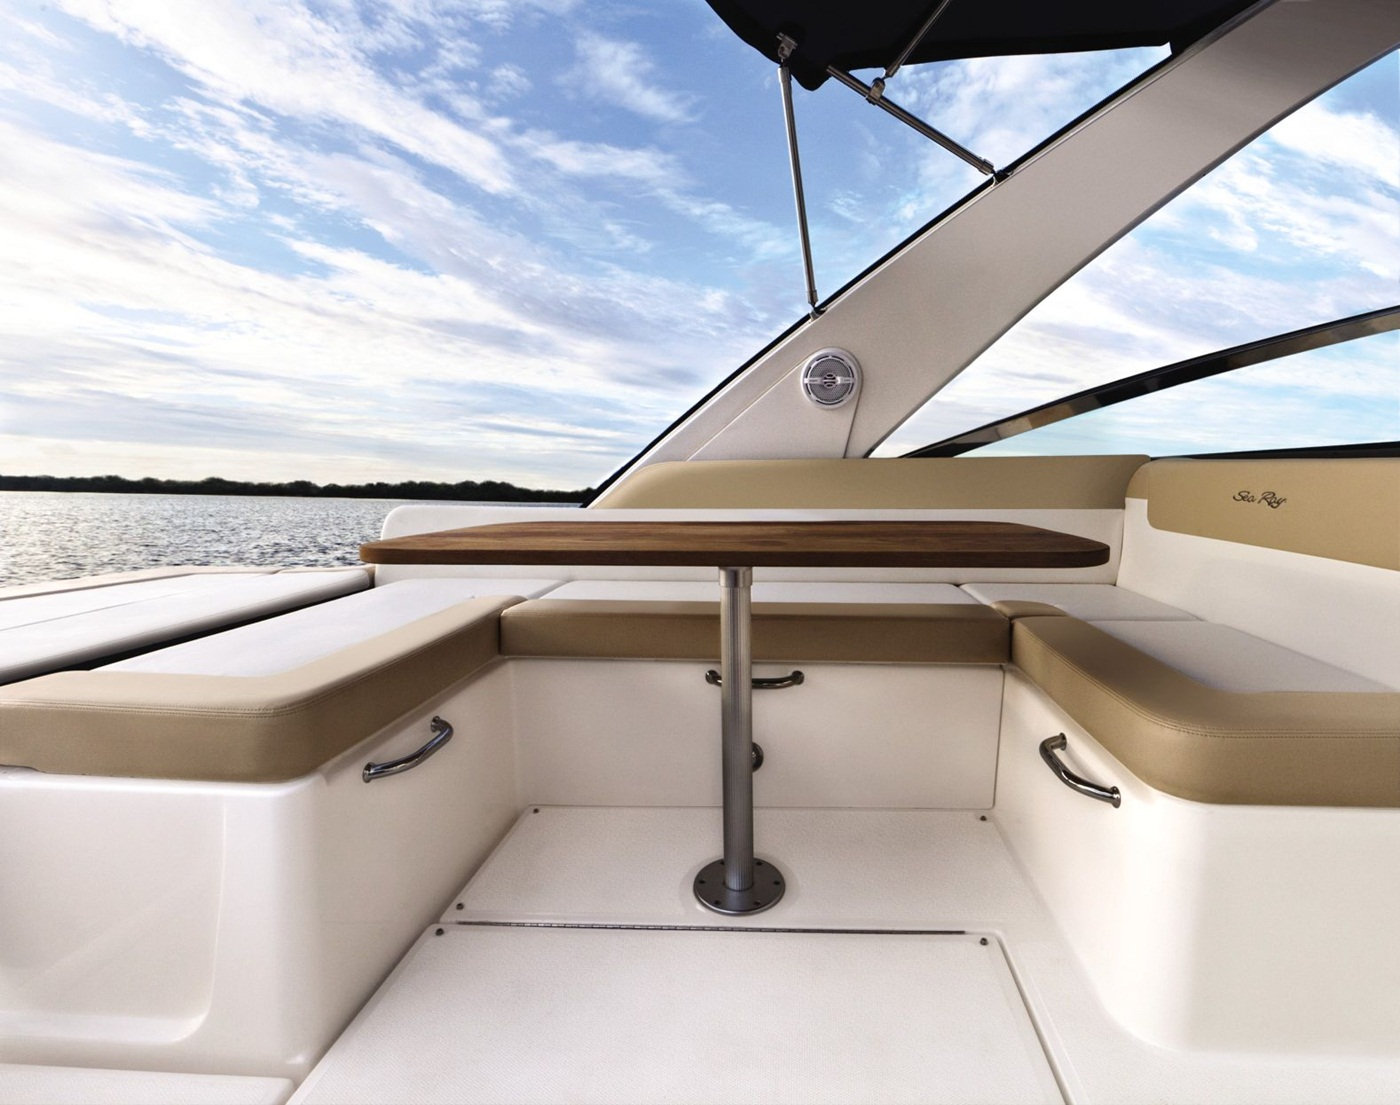 2015 Sea Ray 370 Venture Deck